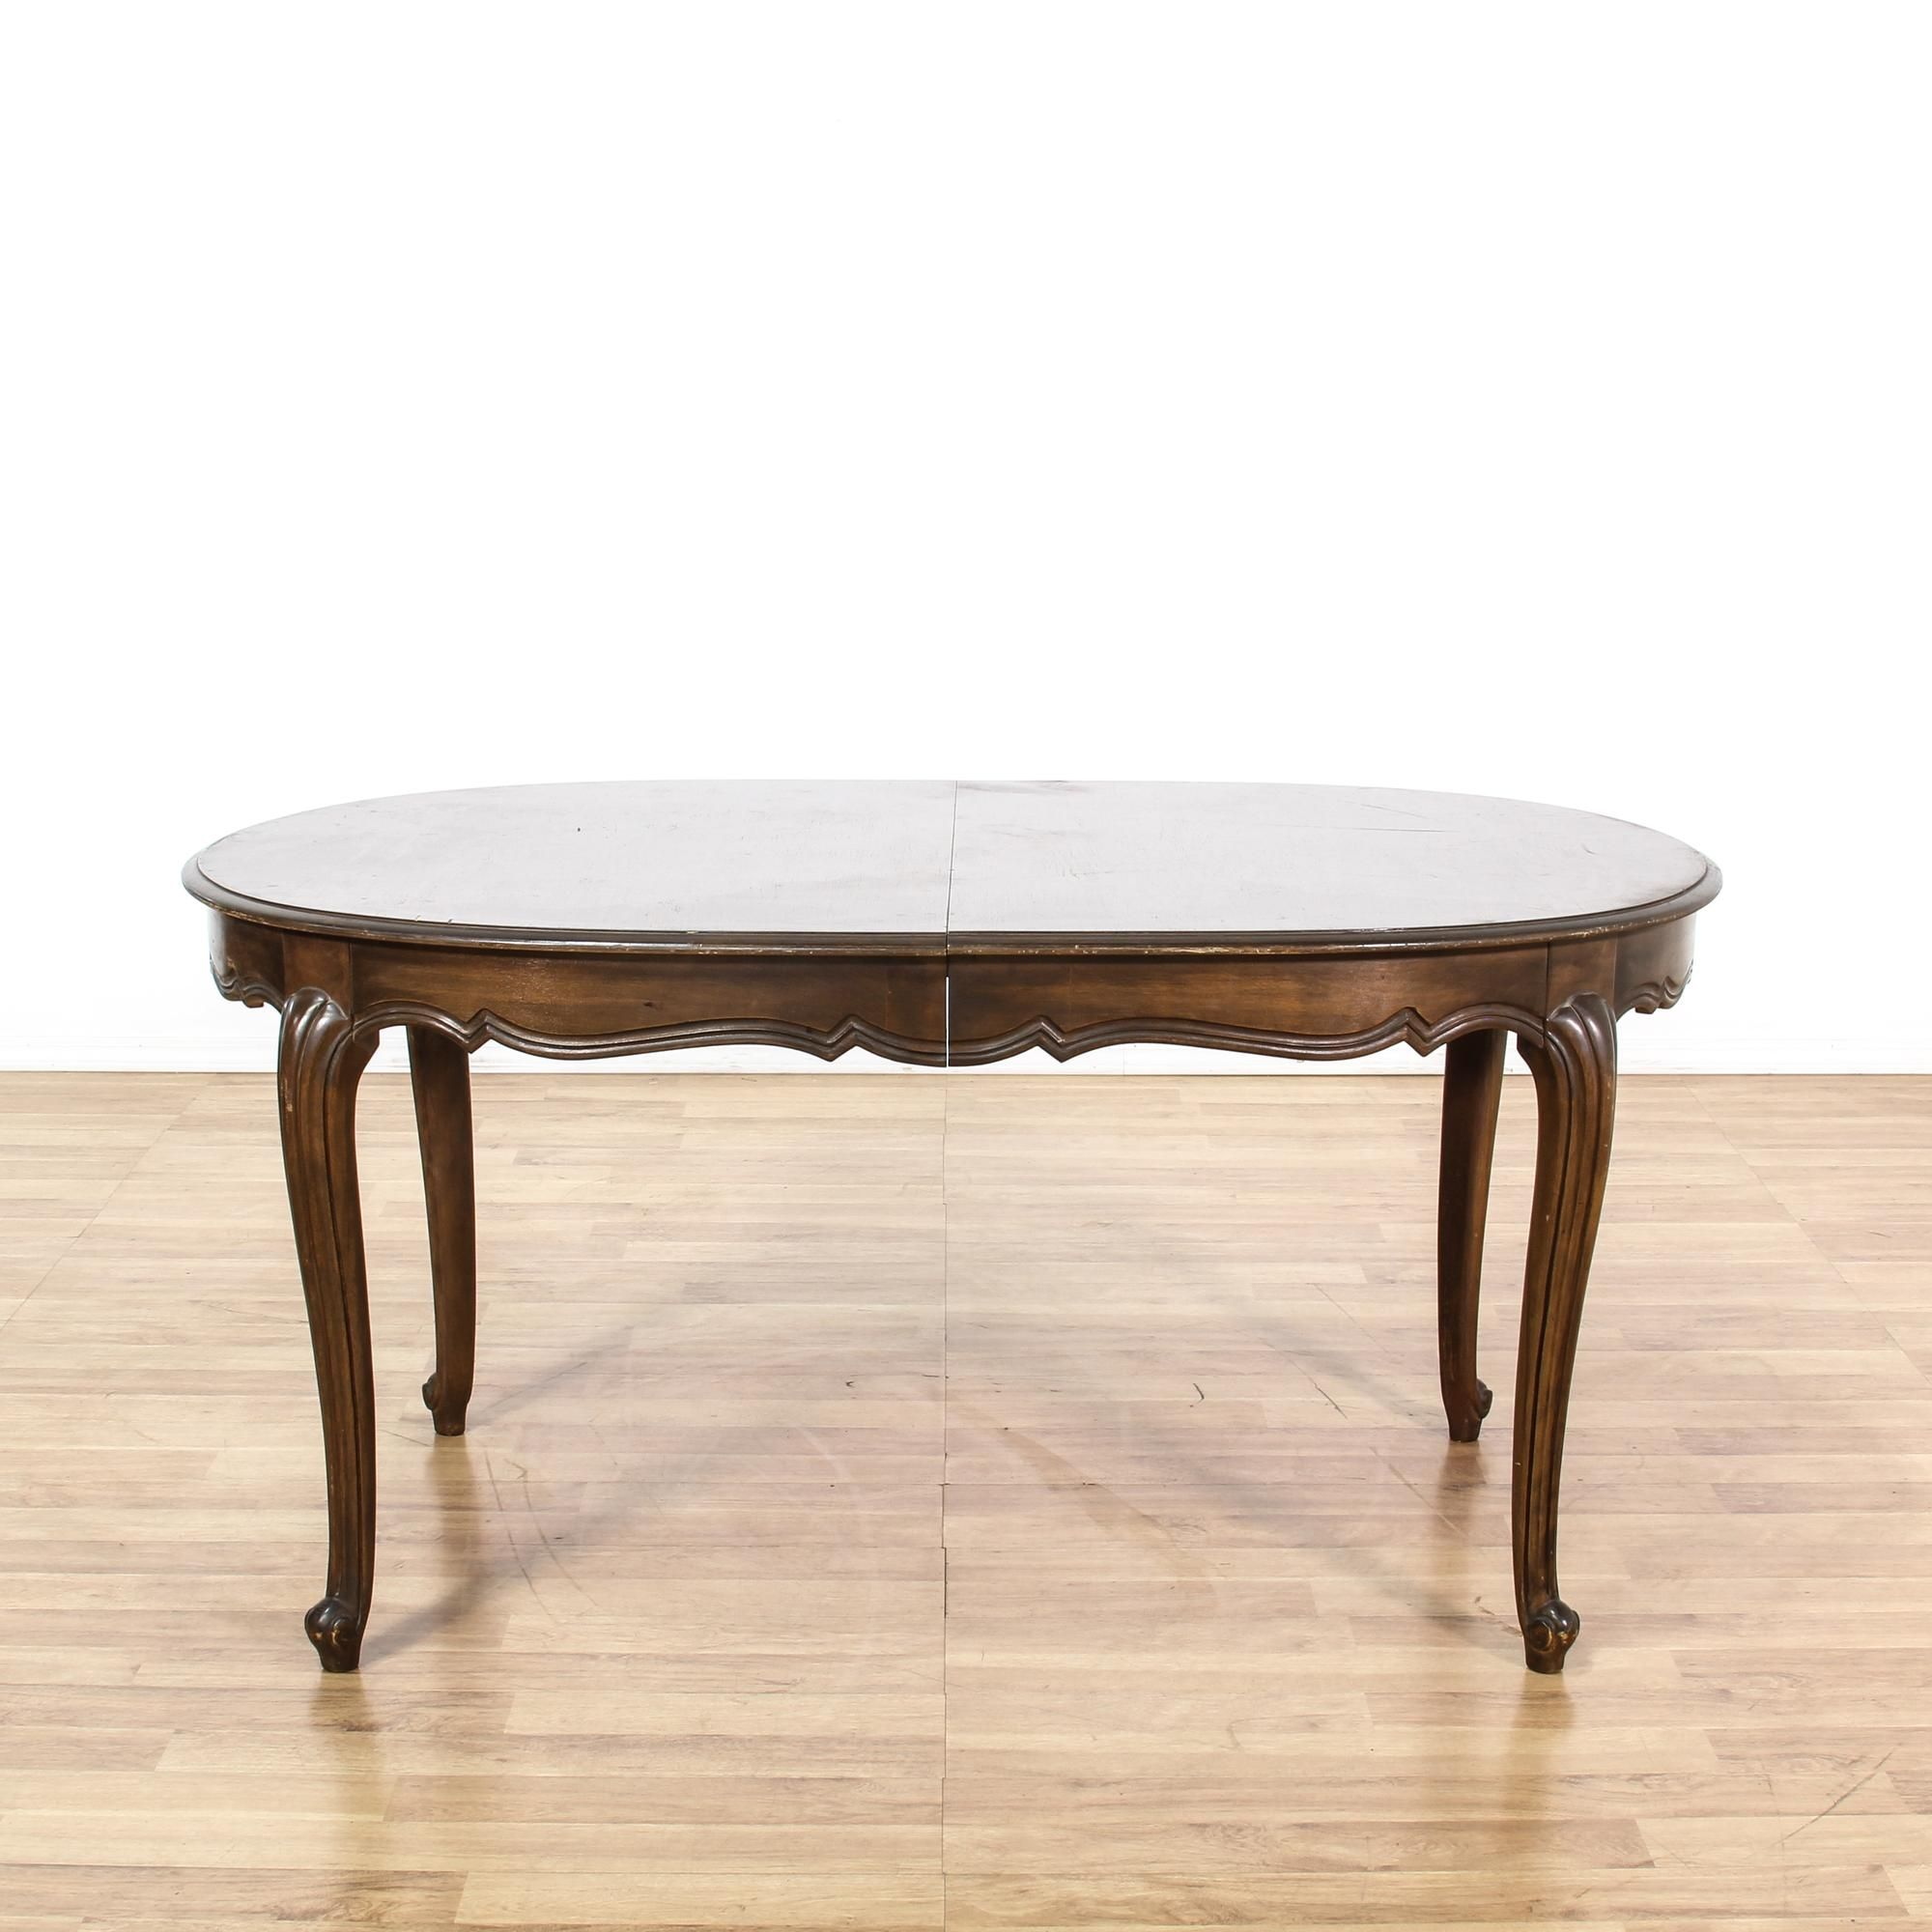 This dining table is featured in a solid walnut wood with a glossy